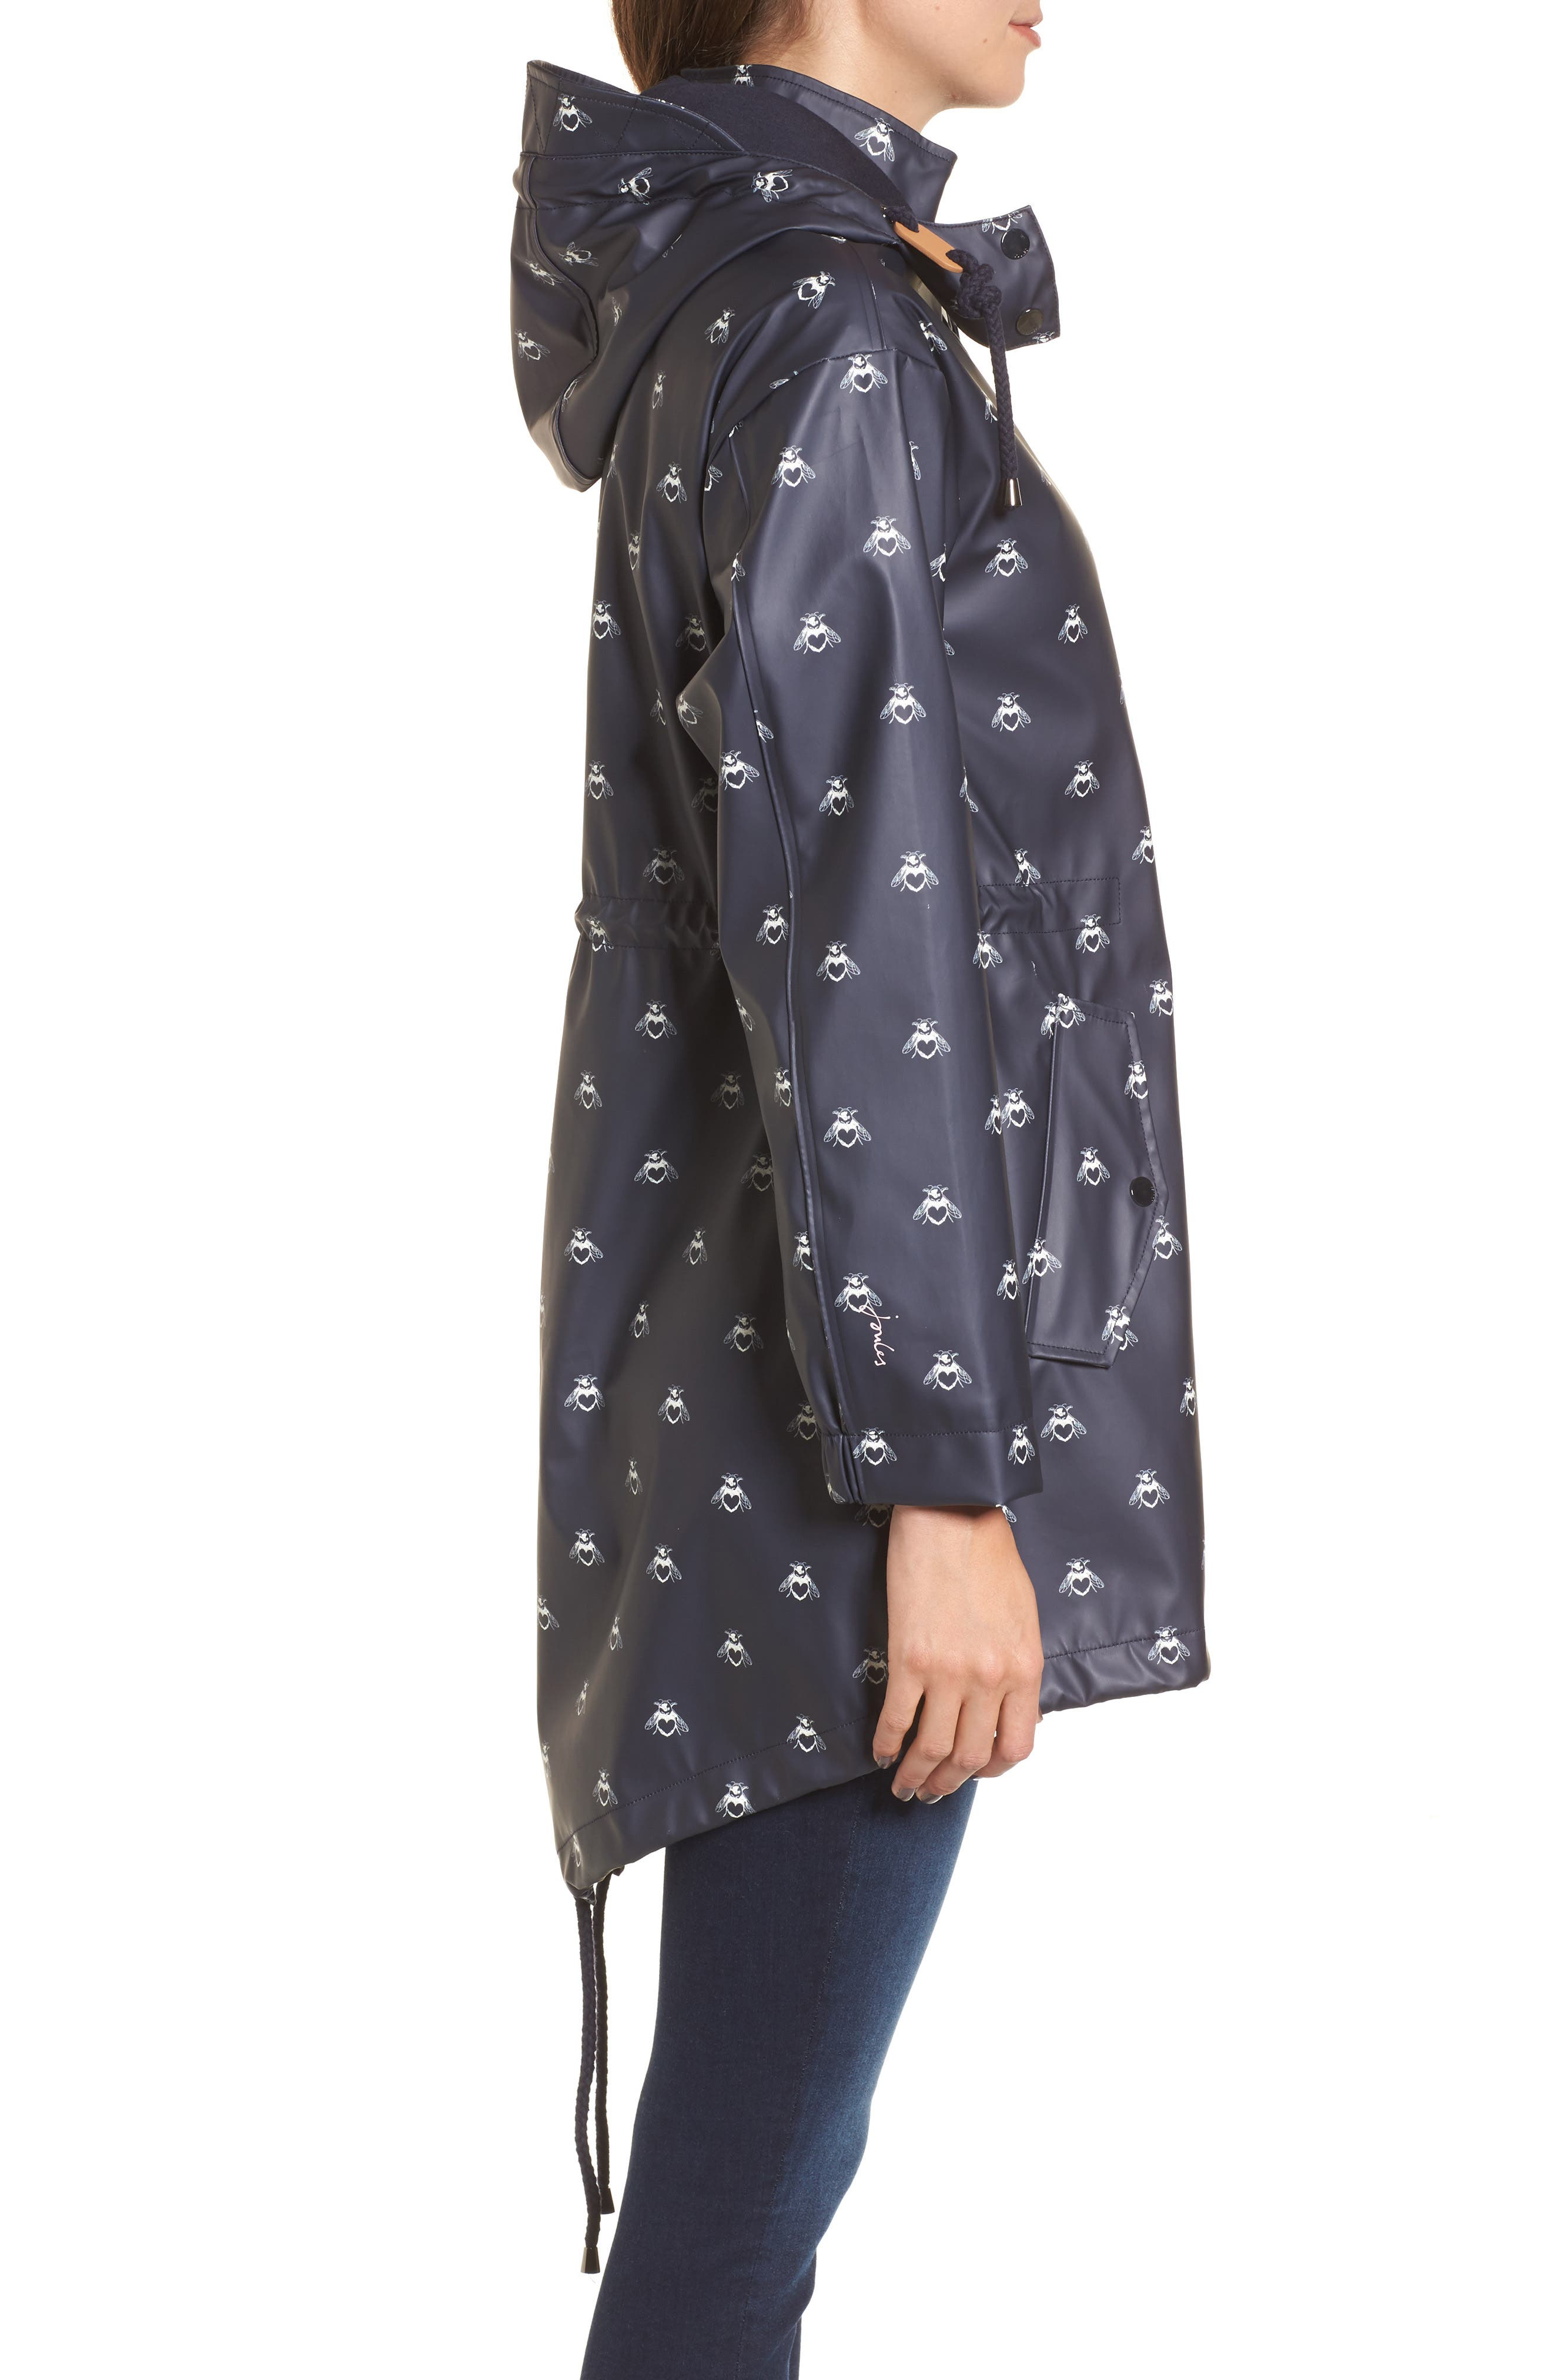 Right As Rain Packable Hooded Raincoat,                             Alternate thumbnail 3, color,                             Navy Love Bees